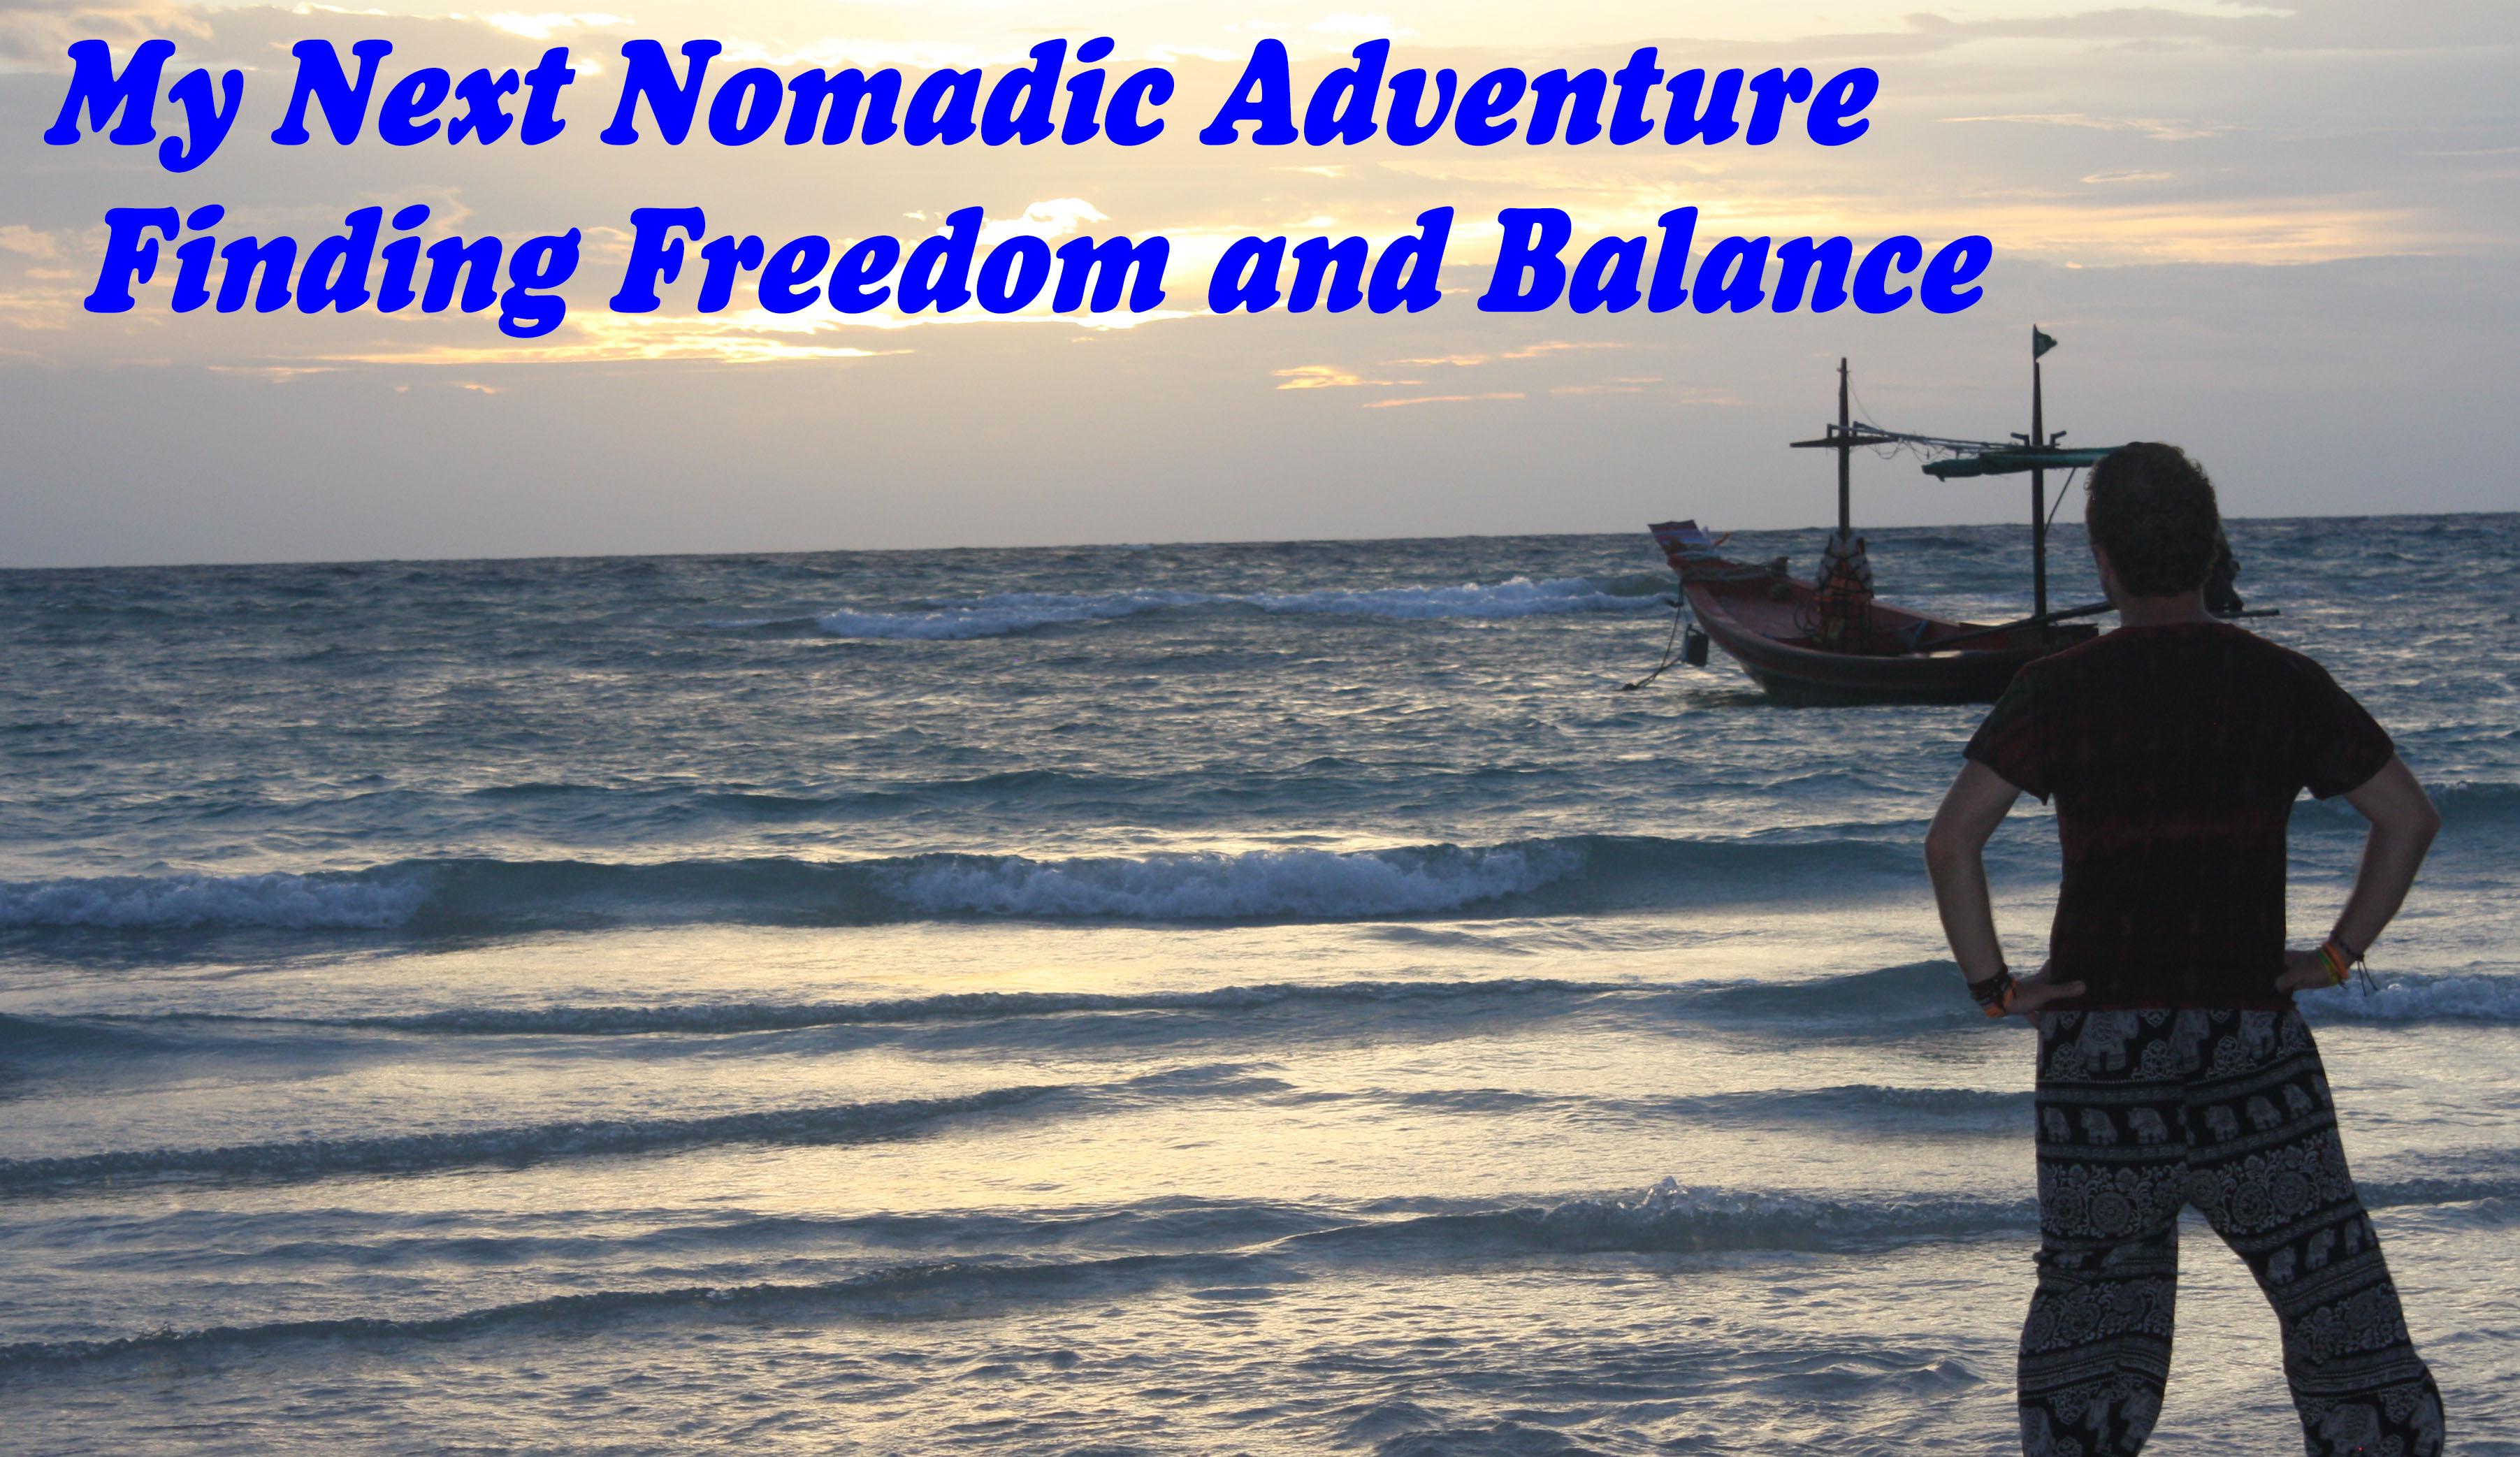 Finding freedom and balance